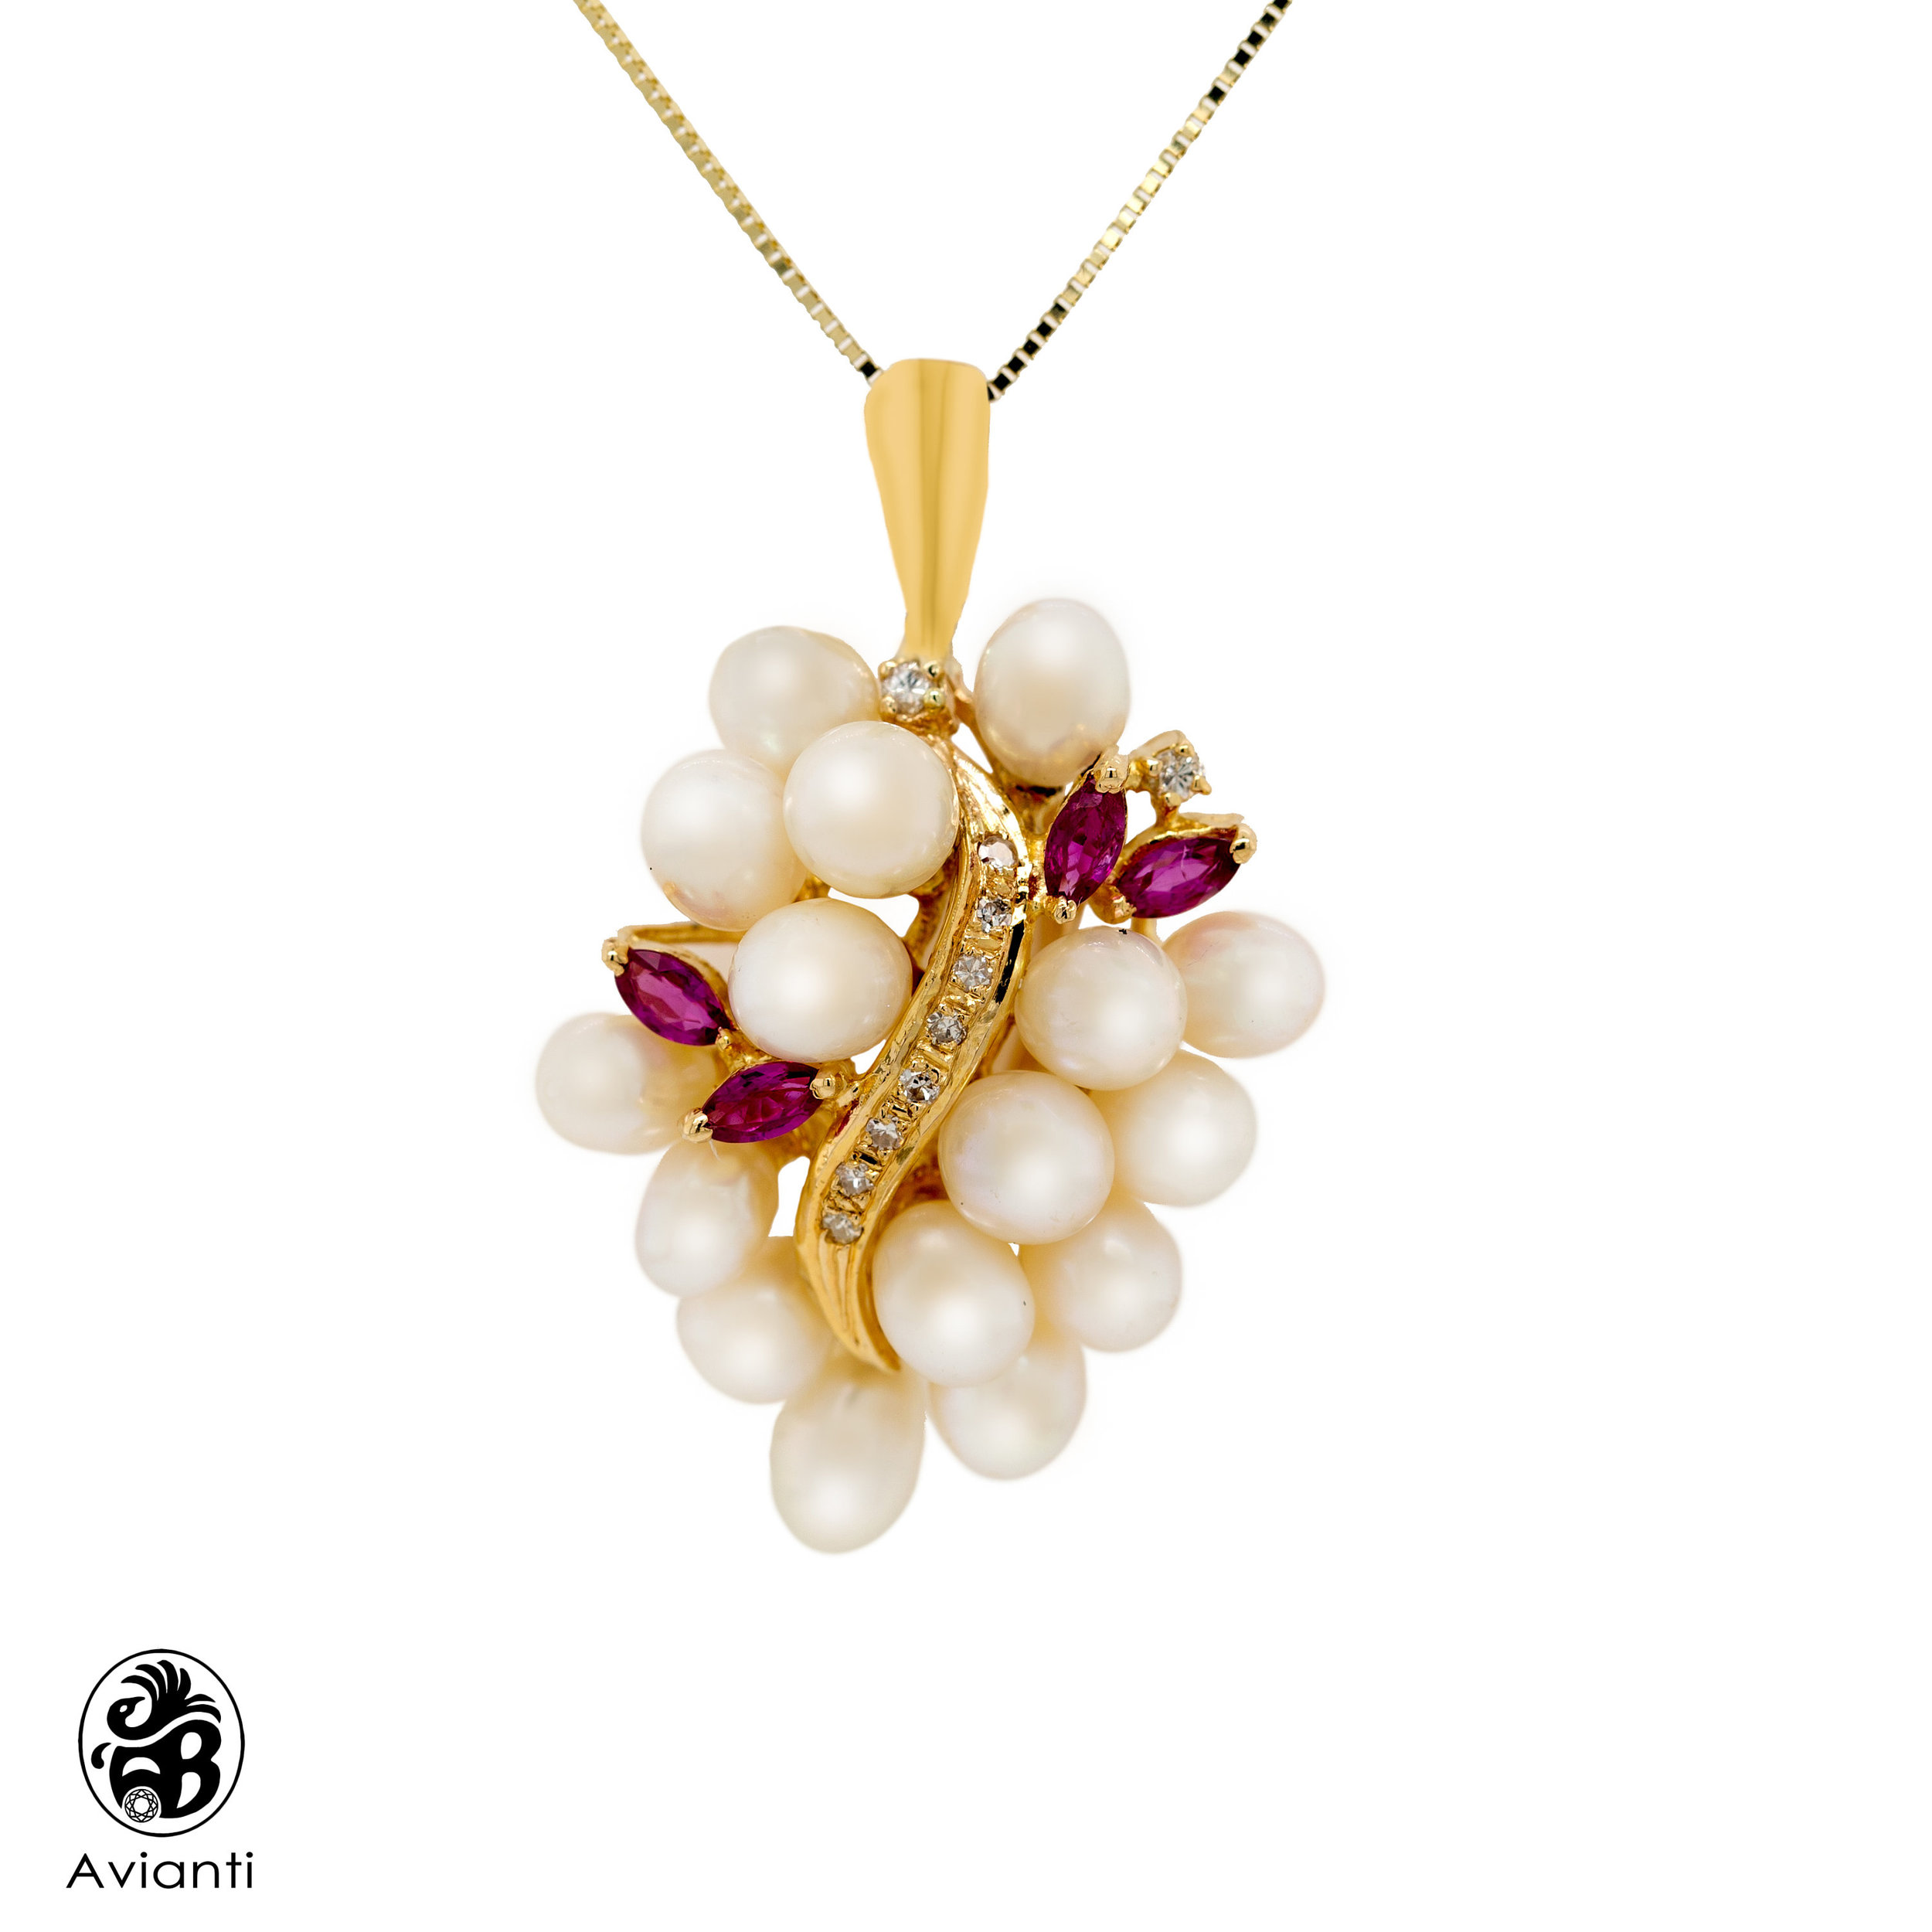 Avianti Vintage Rice Pearl Pendant Jewelry Gifts